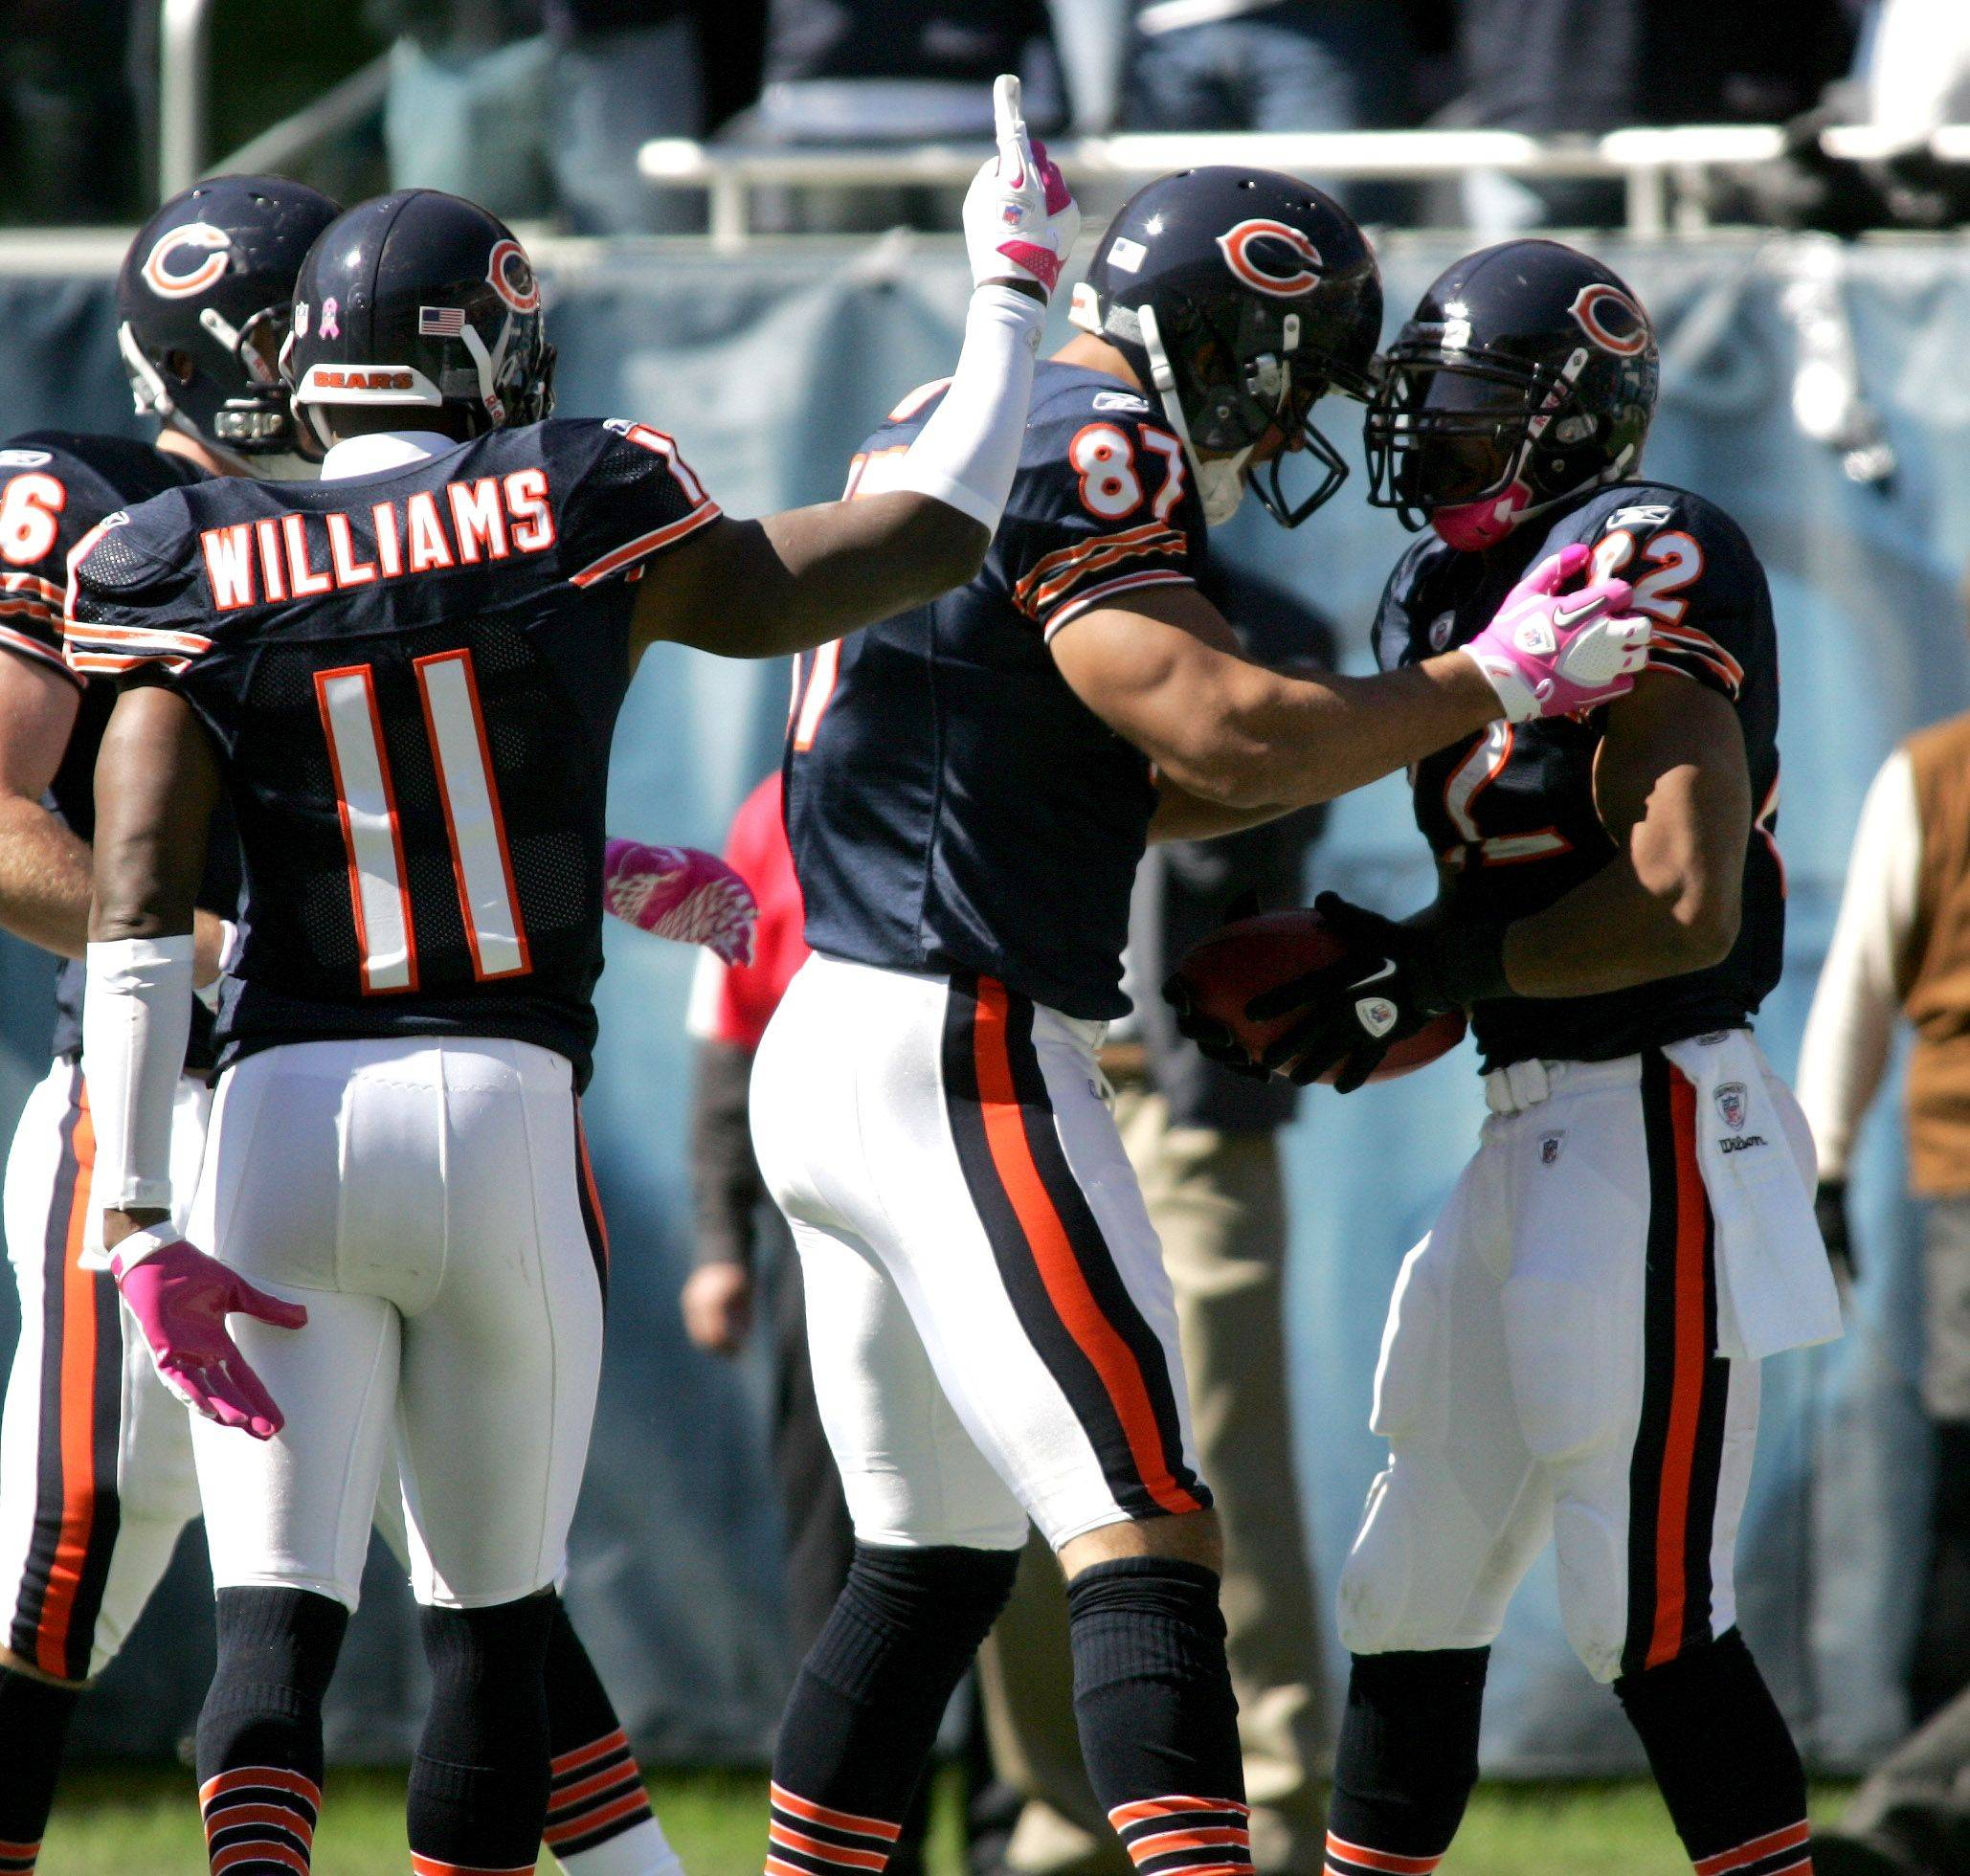 The Chicago Bears celebrate a touchdown by Matt Forte, right, in the second quarter against the Carolina Panthers.